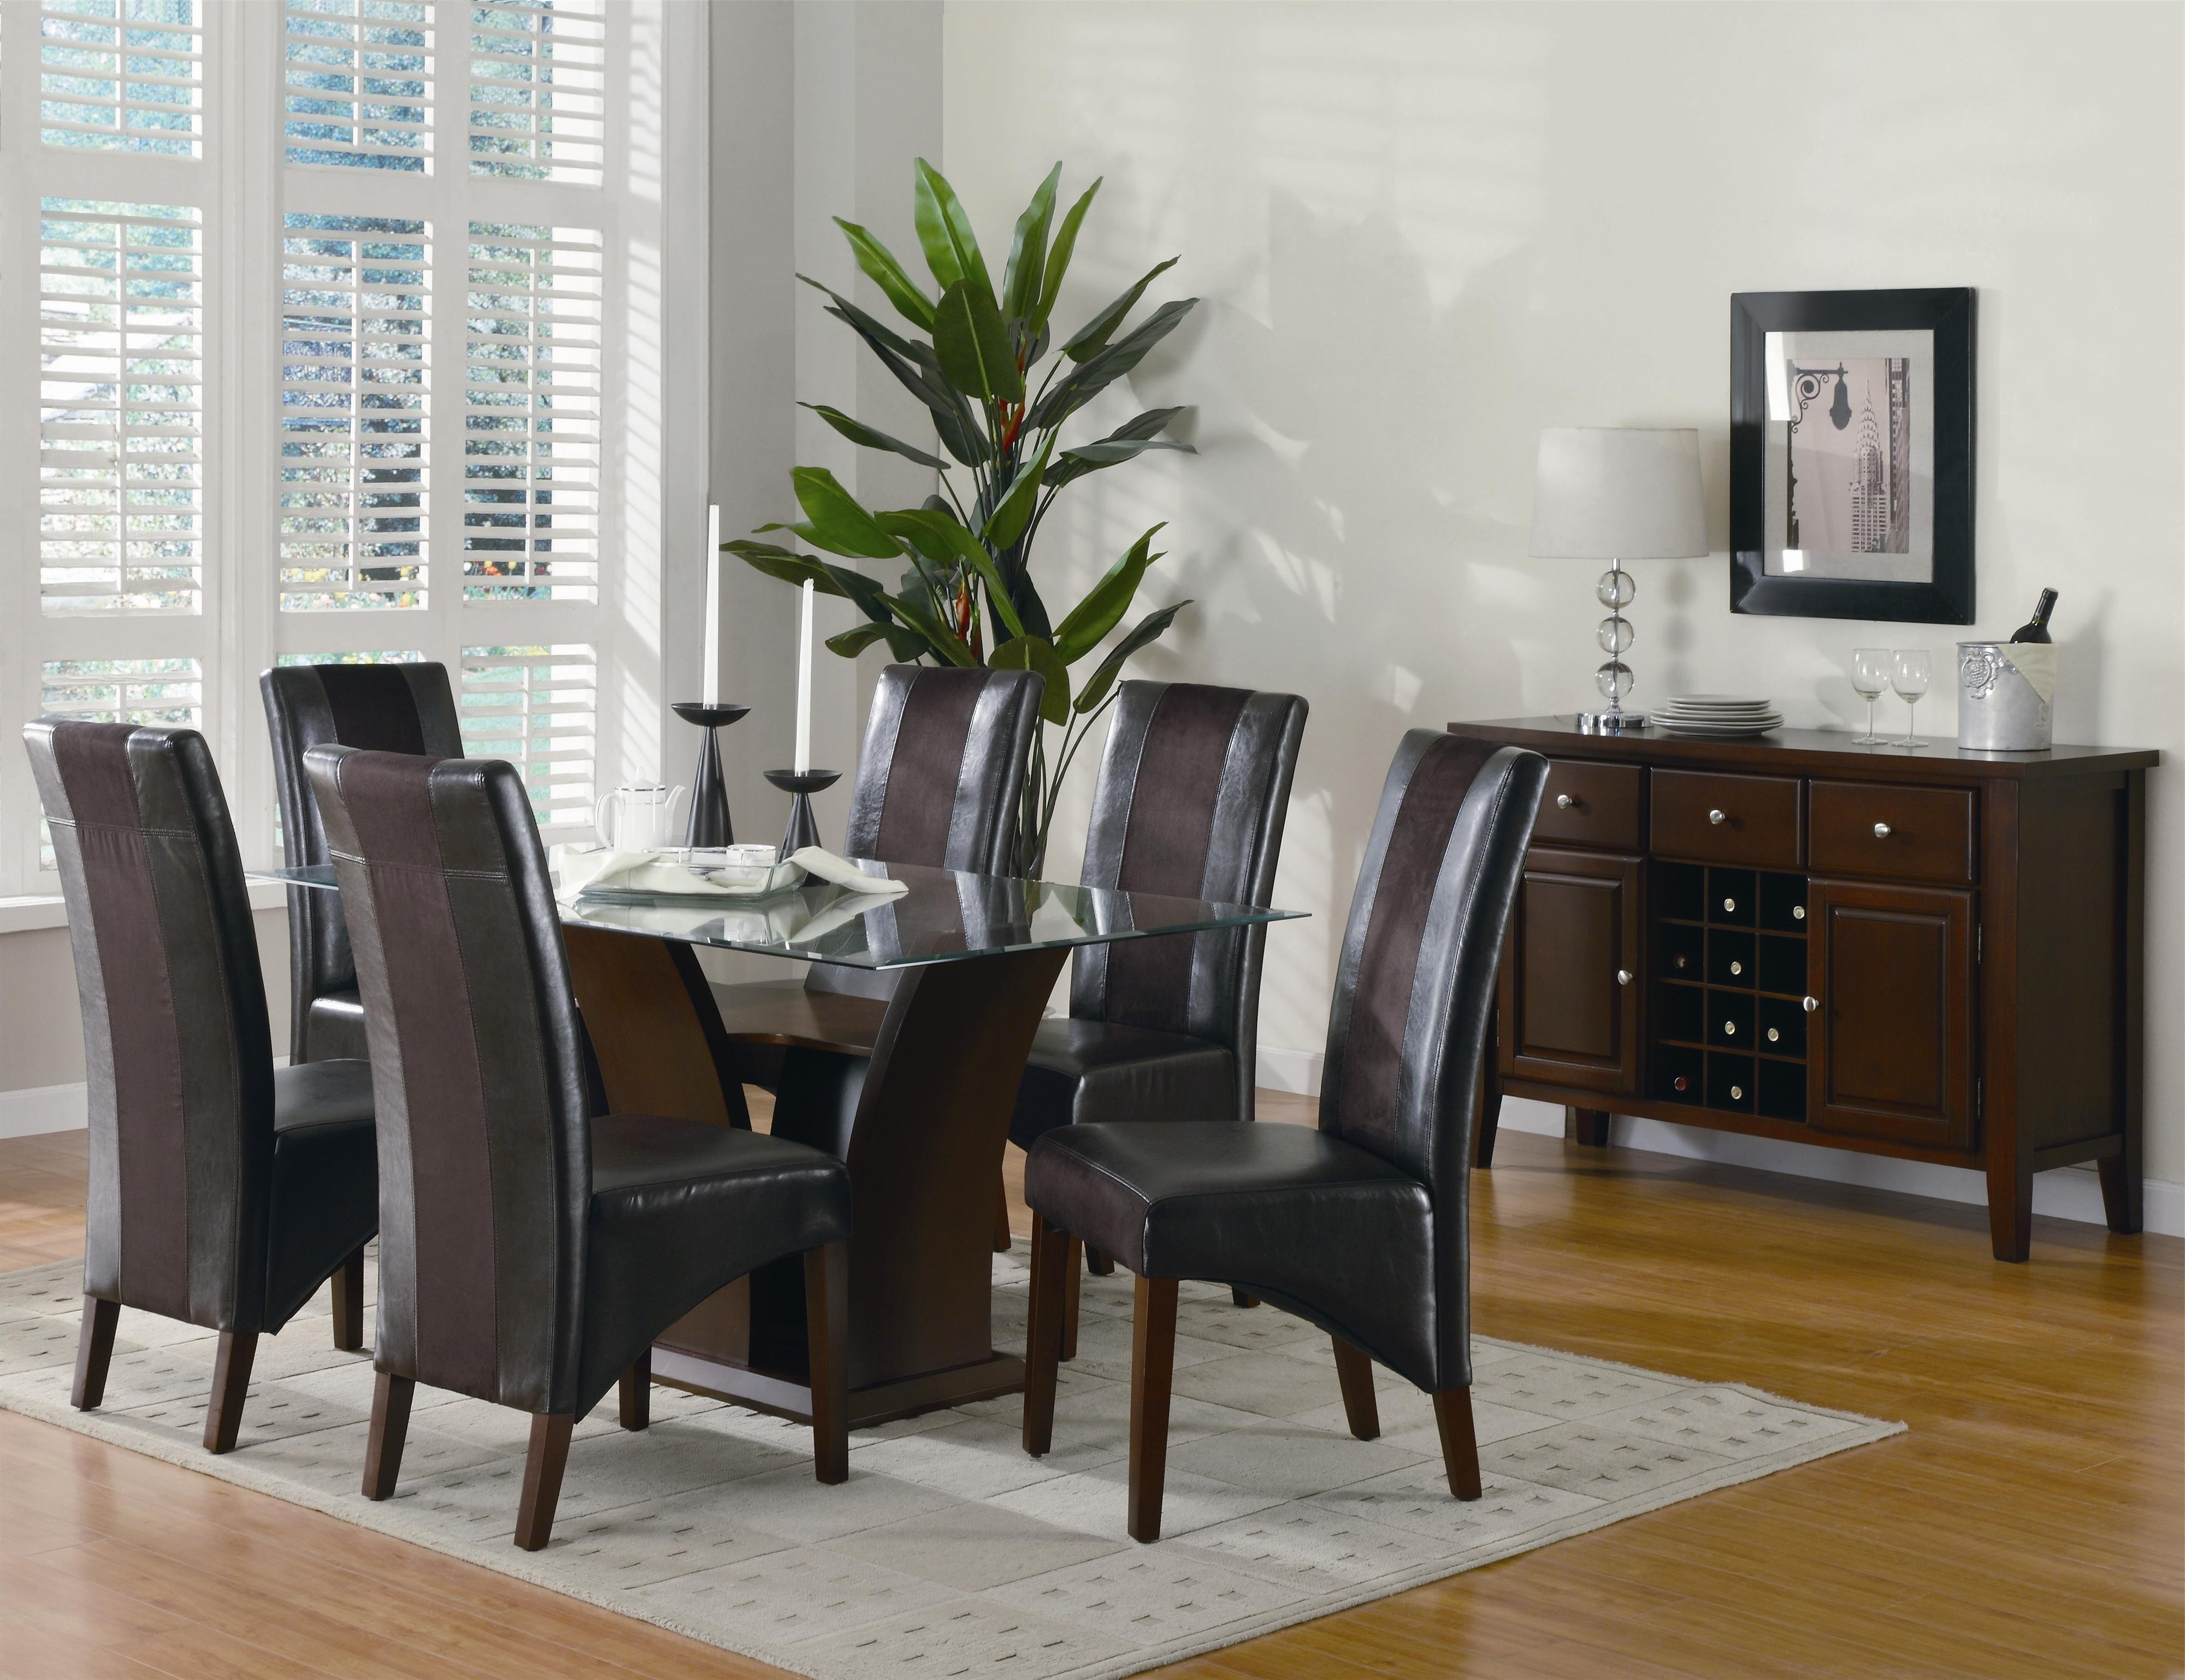 Dark Brown Leather Dining Chairs for Most Popular Stunning Dark Brown Varnished Wooden Dining Chair With Dark Brown